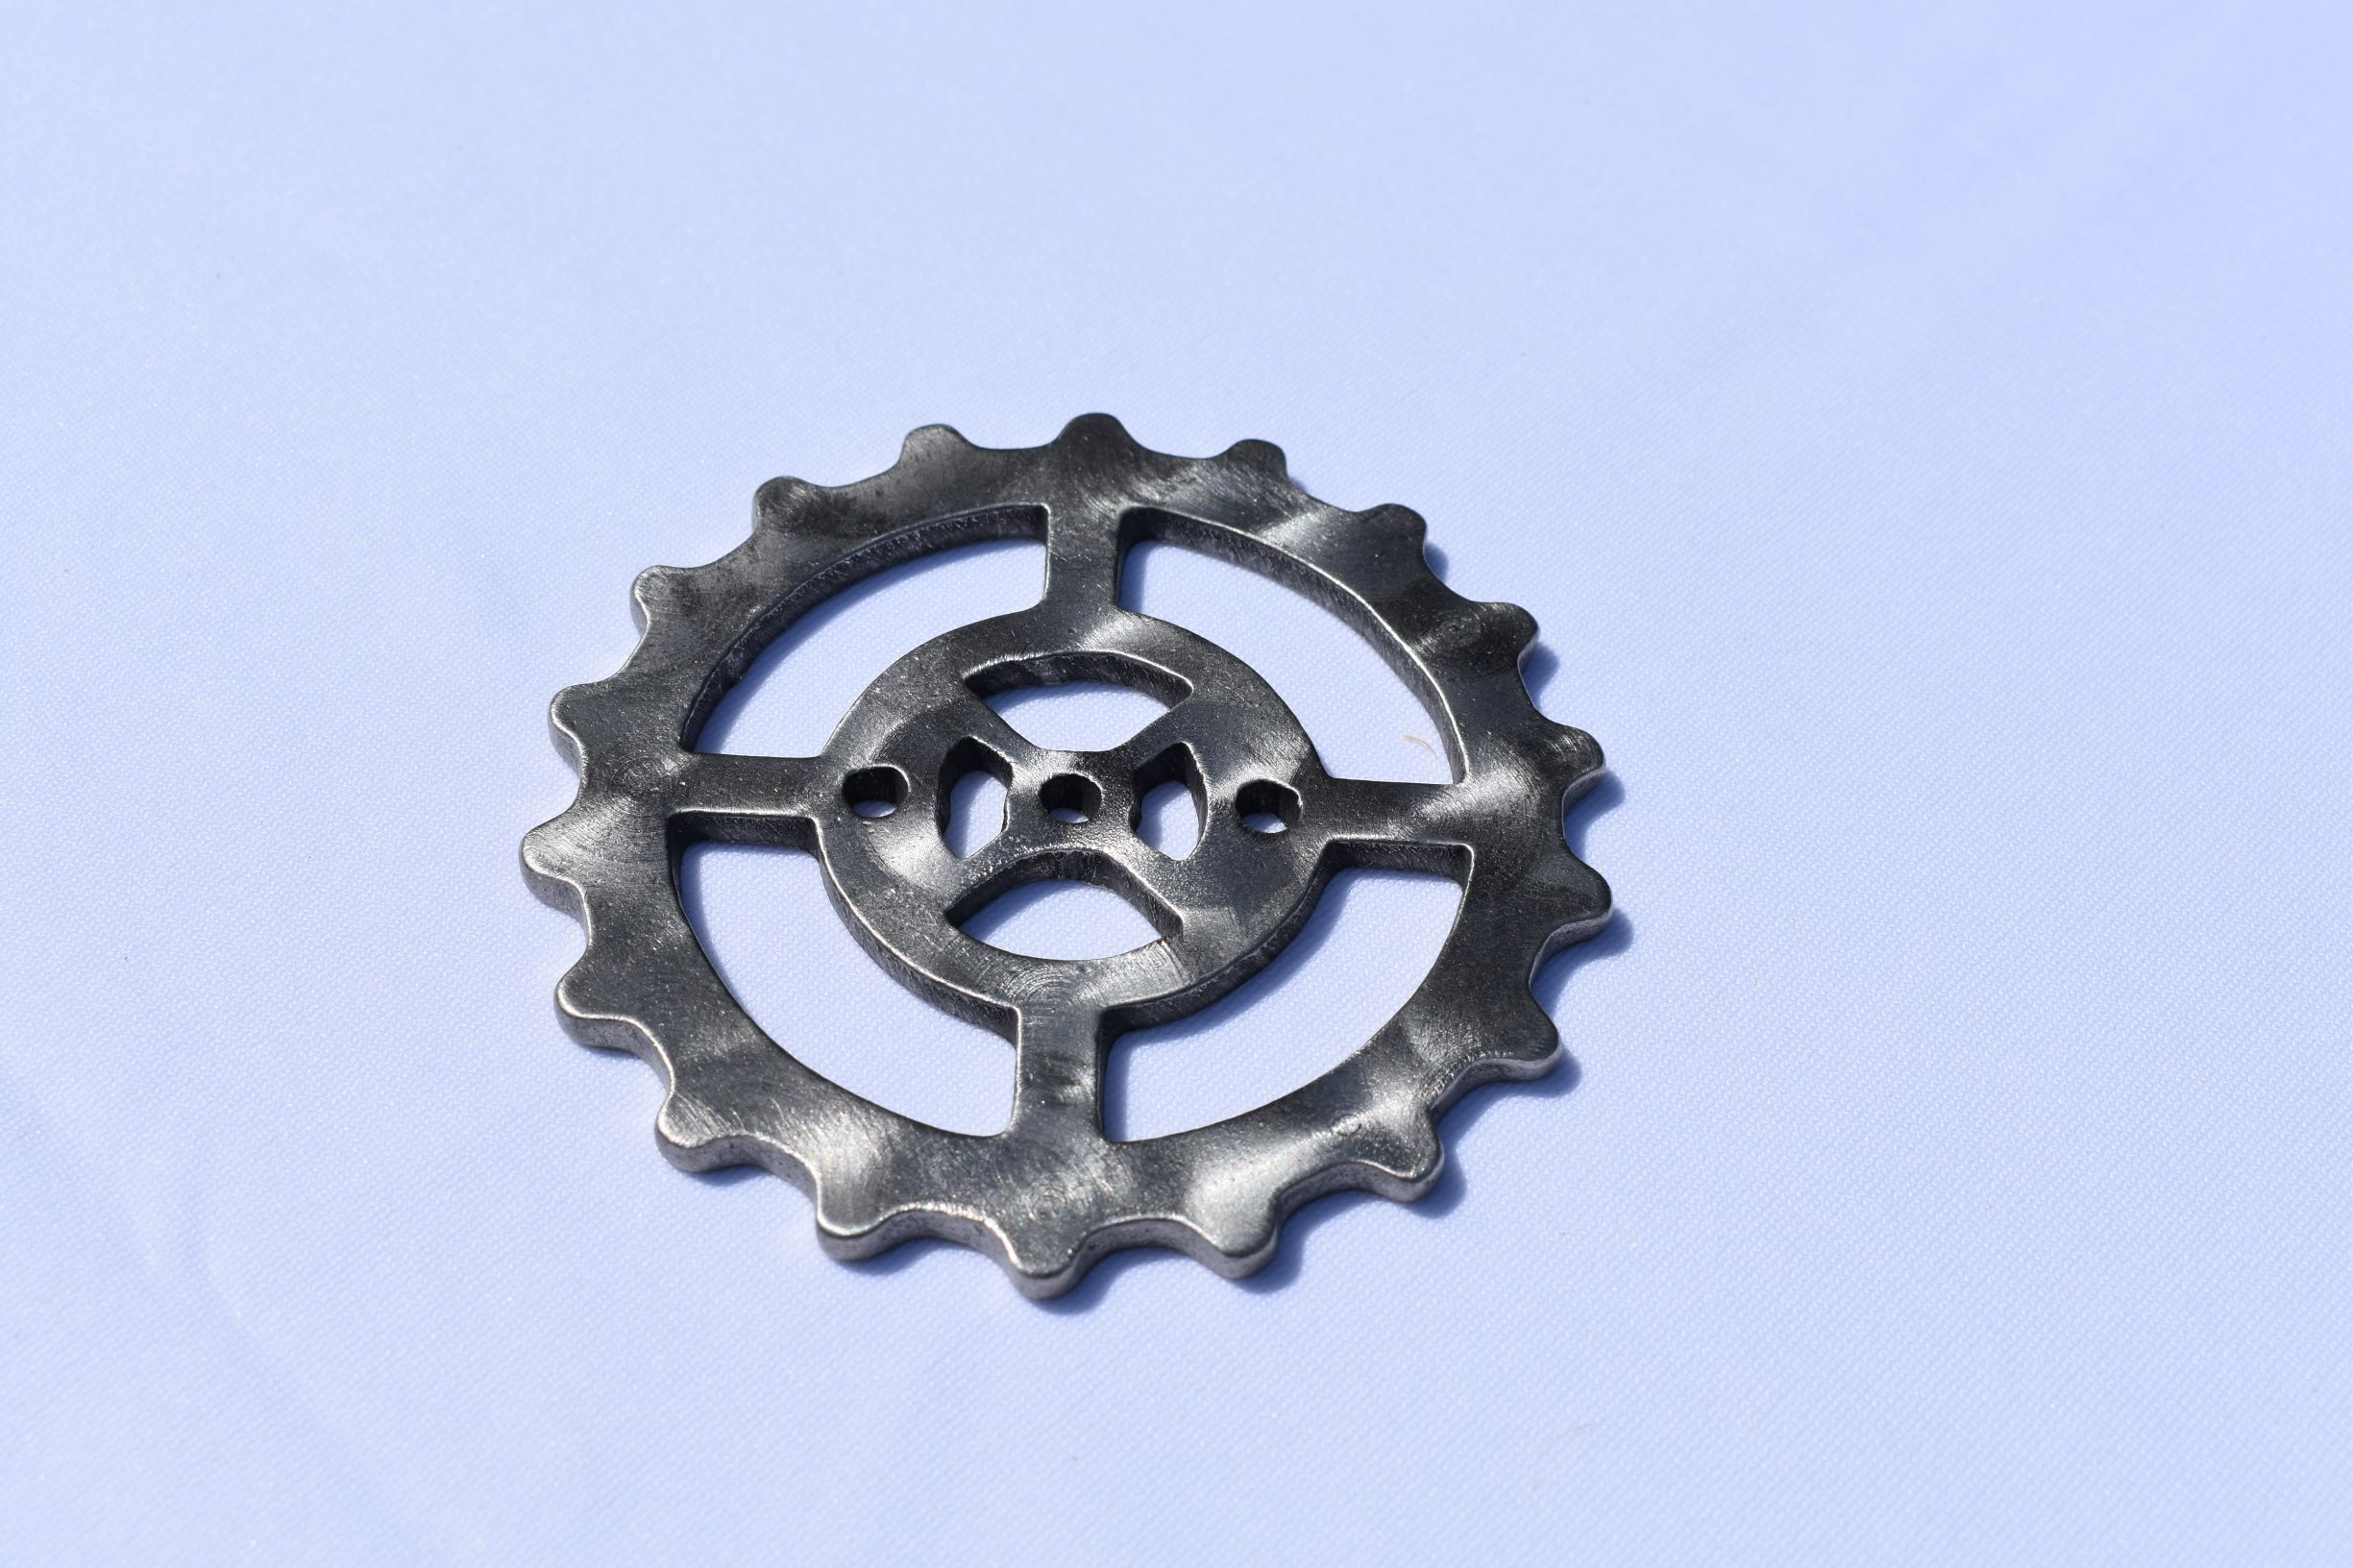 Coasters - Stainless Steel Gears Third Shift Fabrication Medium